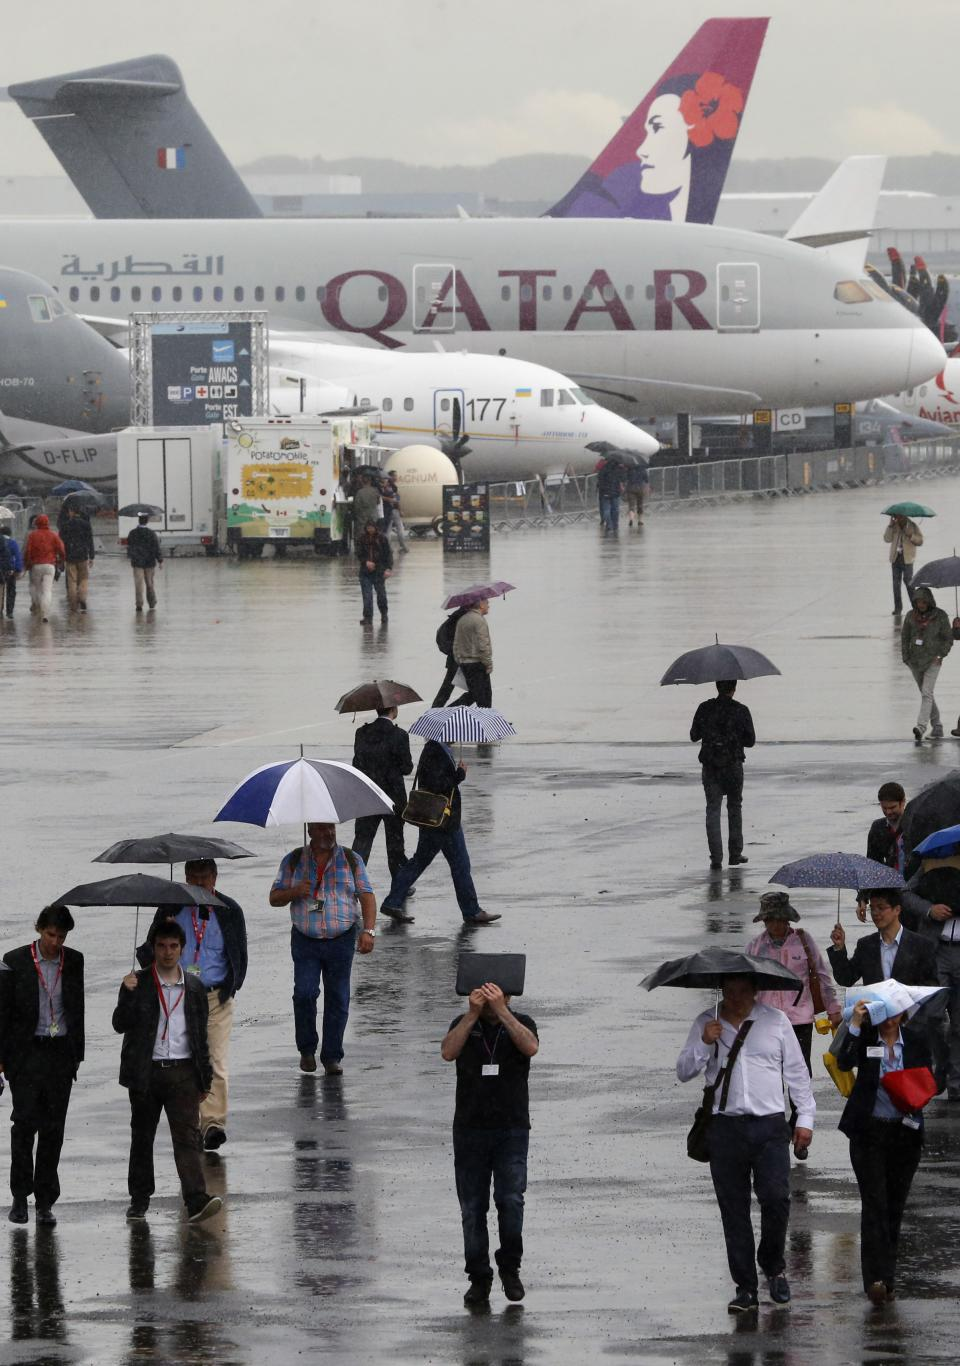 Visitors walk in the rain during the 50th Paris Air Show at Le Bourget airport, north of Paris, Thursday, June 20, 2013.  (AP Photo/Francois Mori)